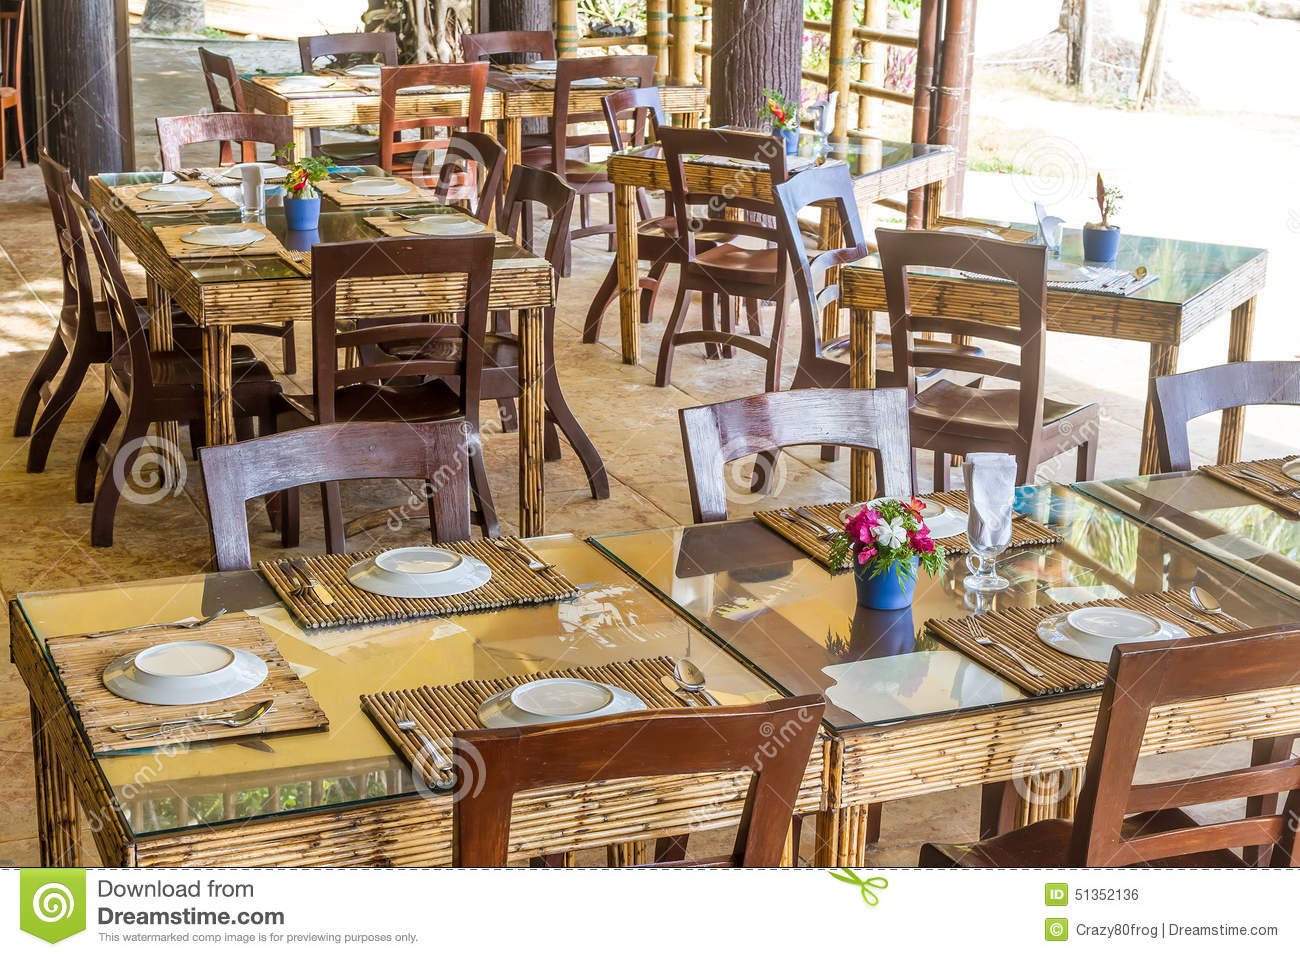 restaurant kitchen setup cost pendant lighting table in outdoor cafe small a hotel